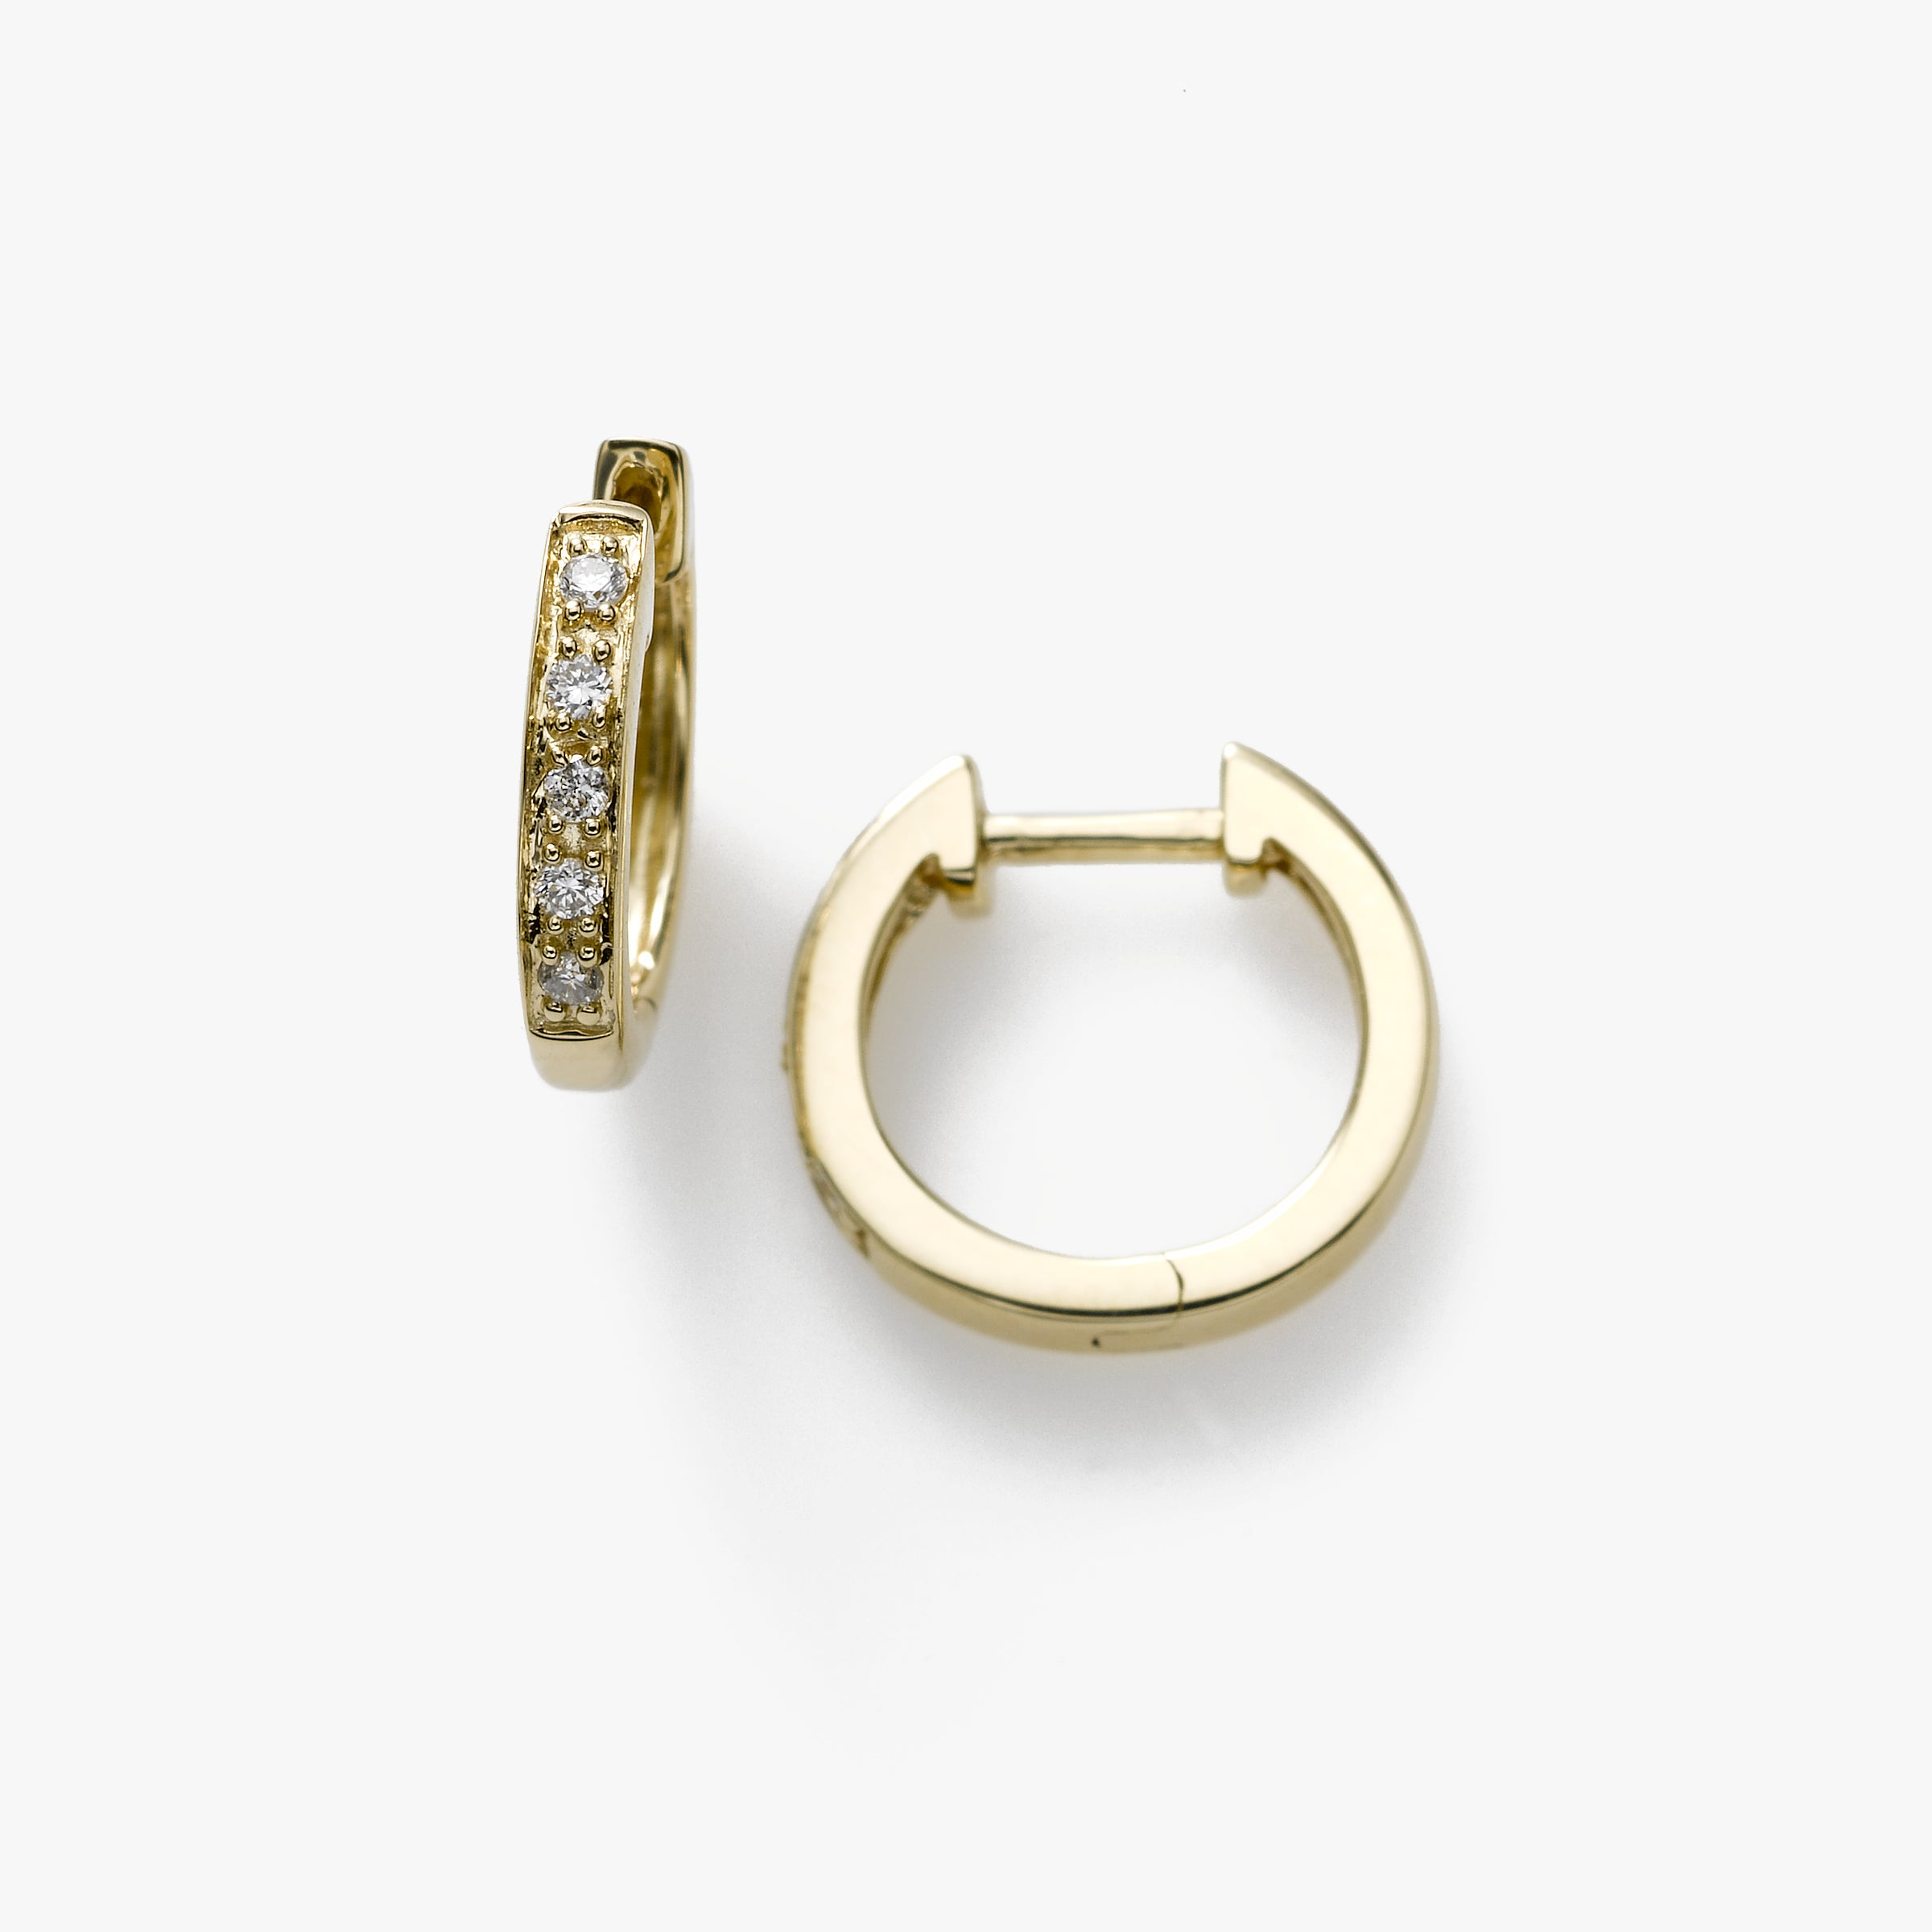 b87d963540daf Mini Hoops, Diamonds .10 Carat, 14K Yellow Gold